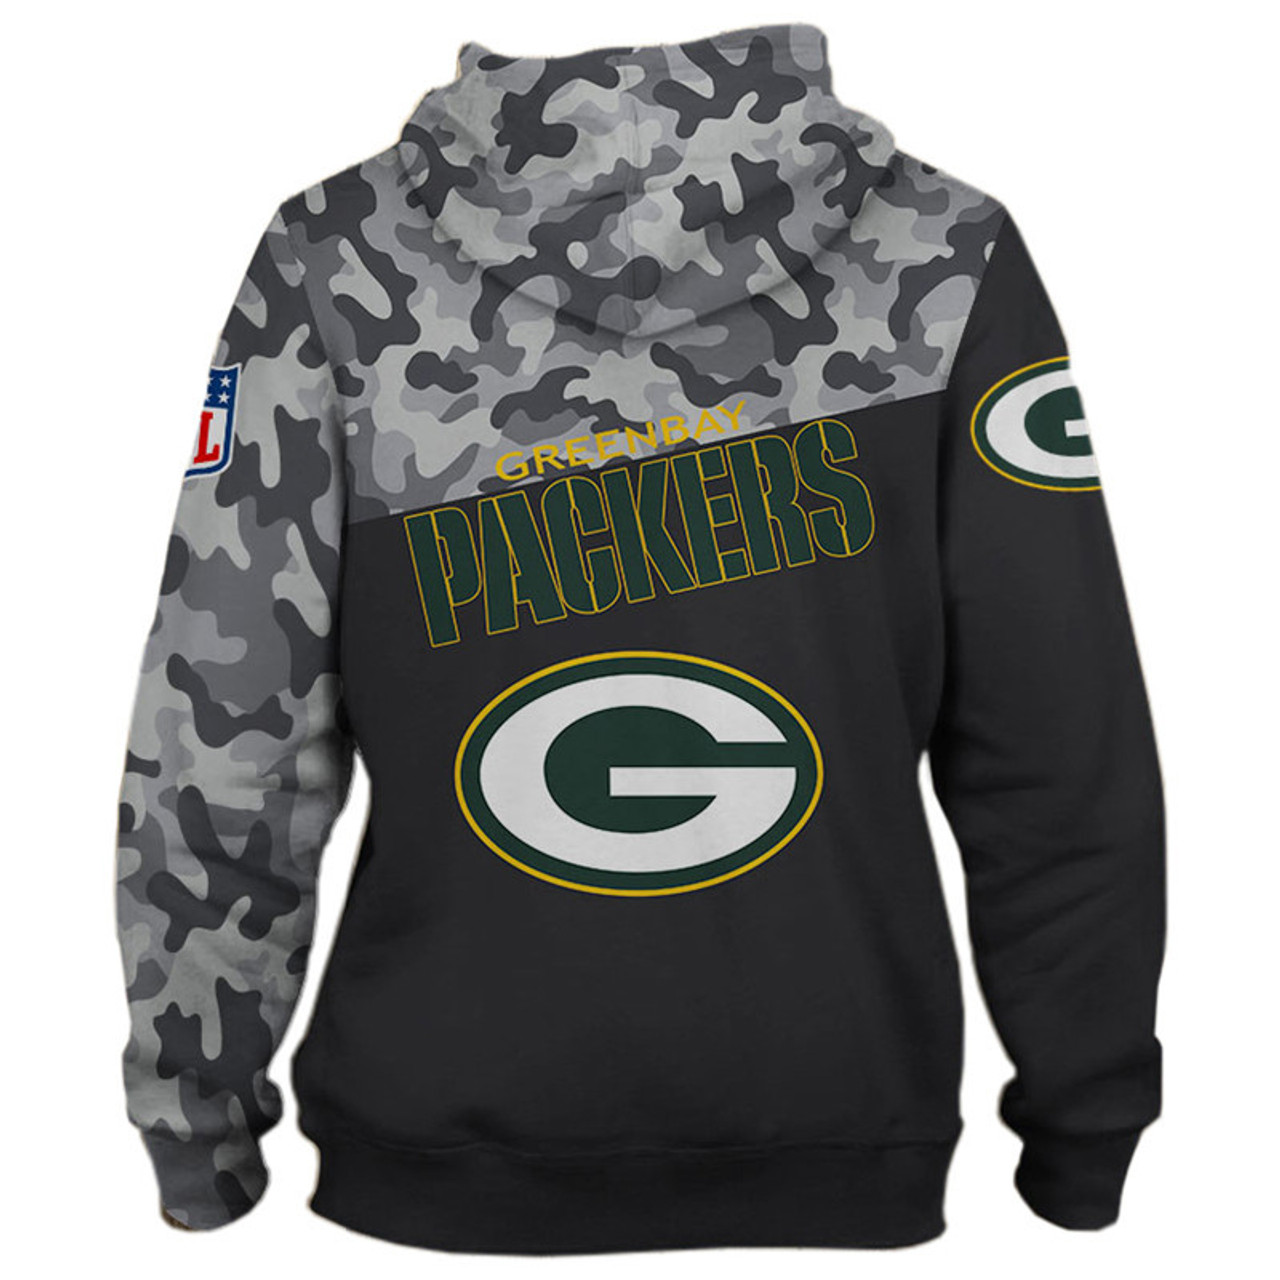 release date 7b0bc f88e7 **(OFFICIAL-N.F.L.GREEN-BAY-PACKERS-CAMO.DESIGN-ZIPPERED-HOODIES/3D-CUSTOM-PACKERS-LOGOS  & OFFICIAL-PACKERS-TEAM-COLORS/NICE-3D-DETAILED-GRAPHIC-PRINT...